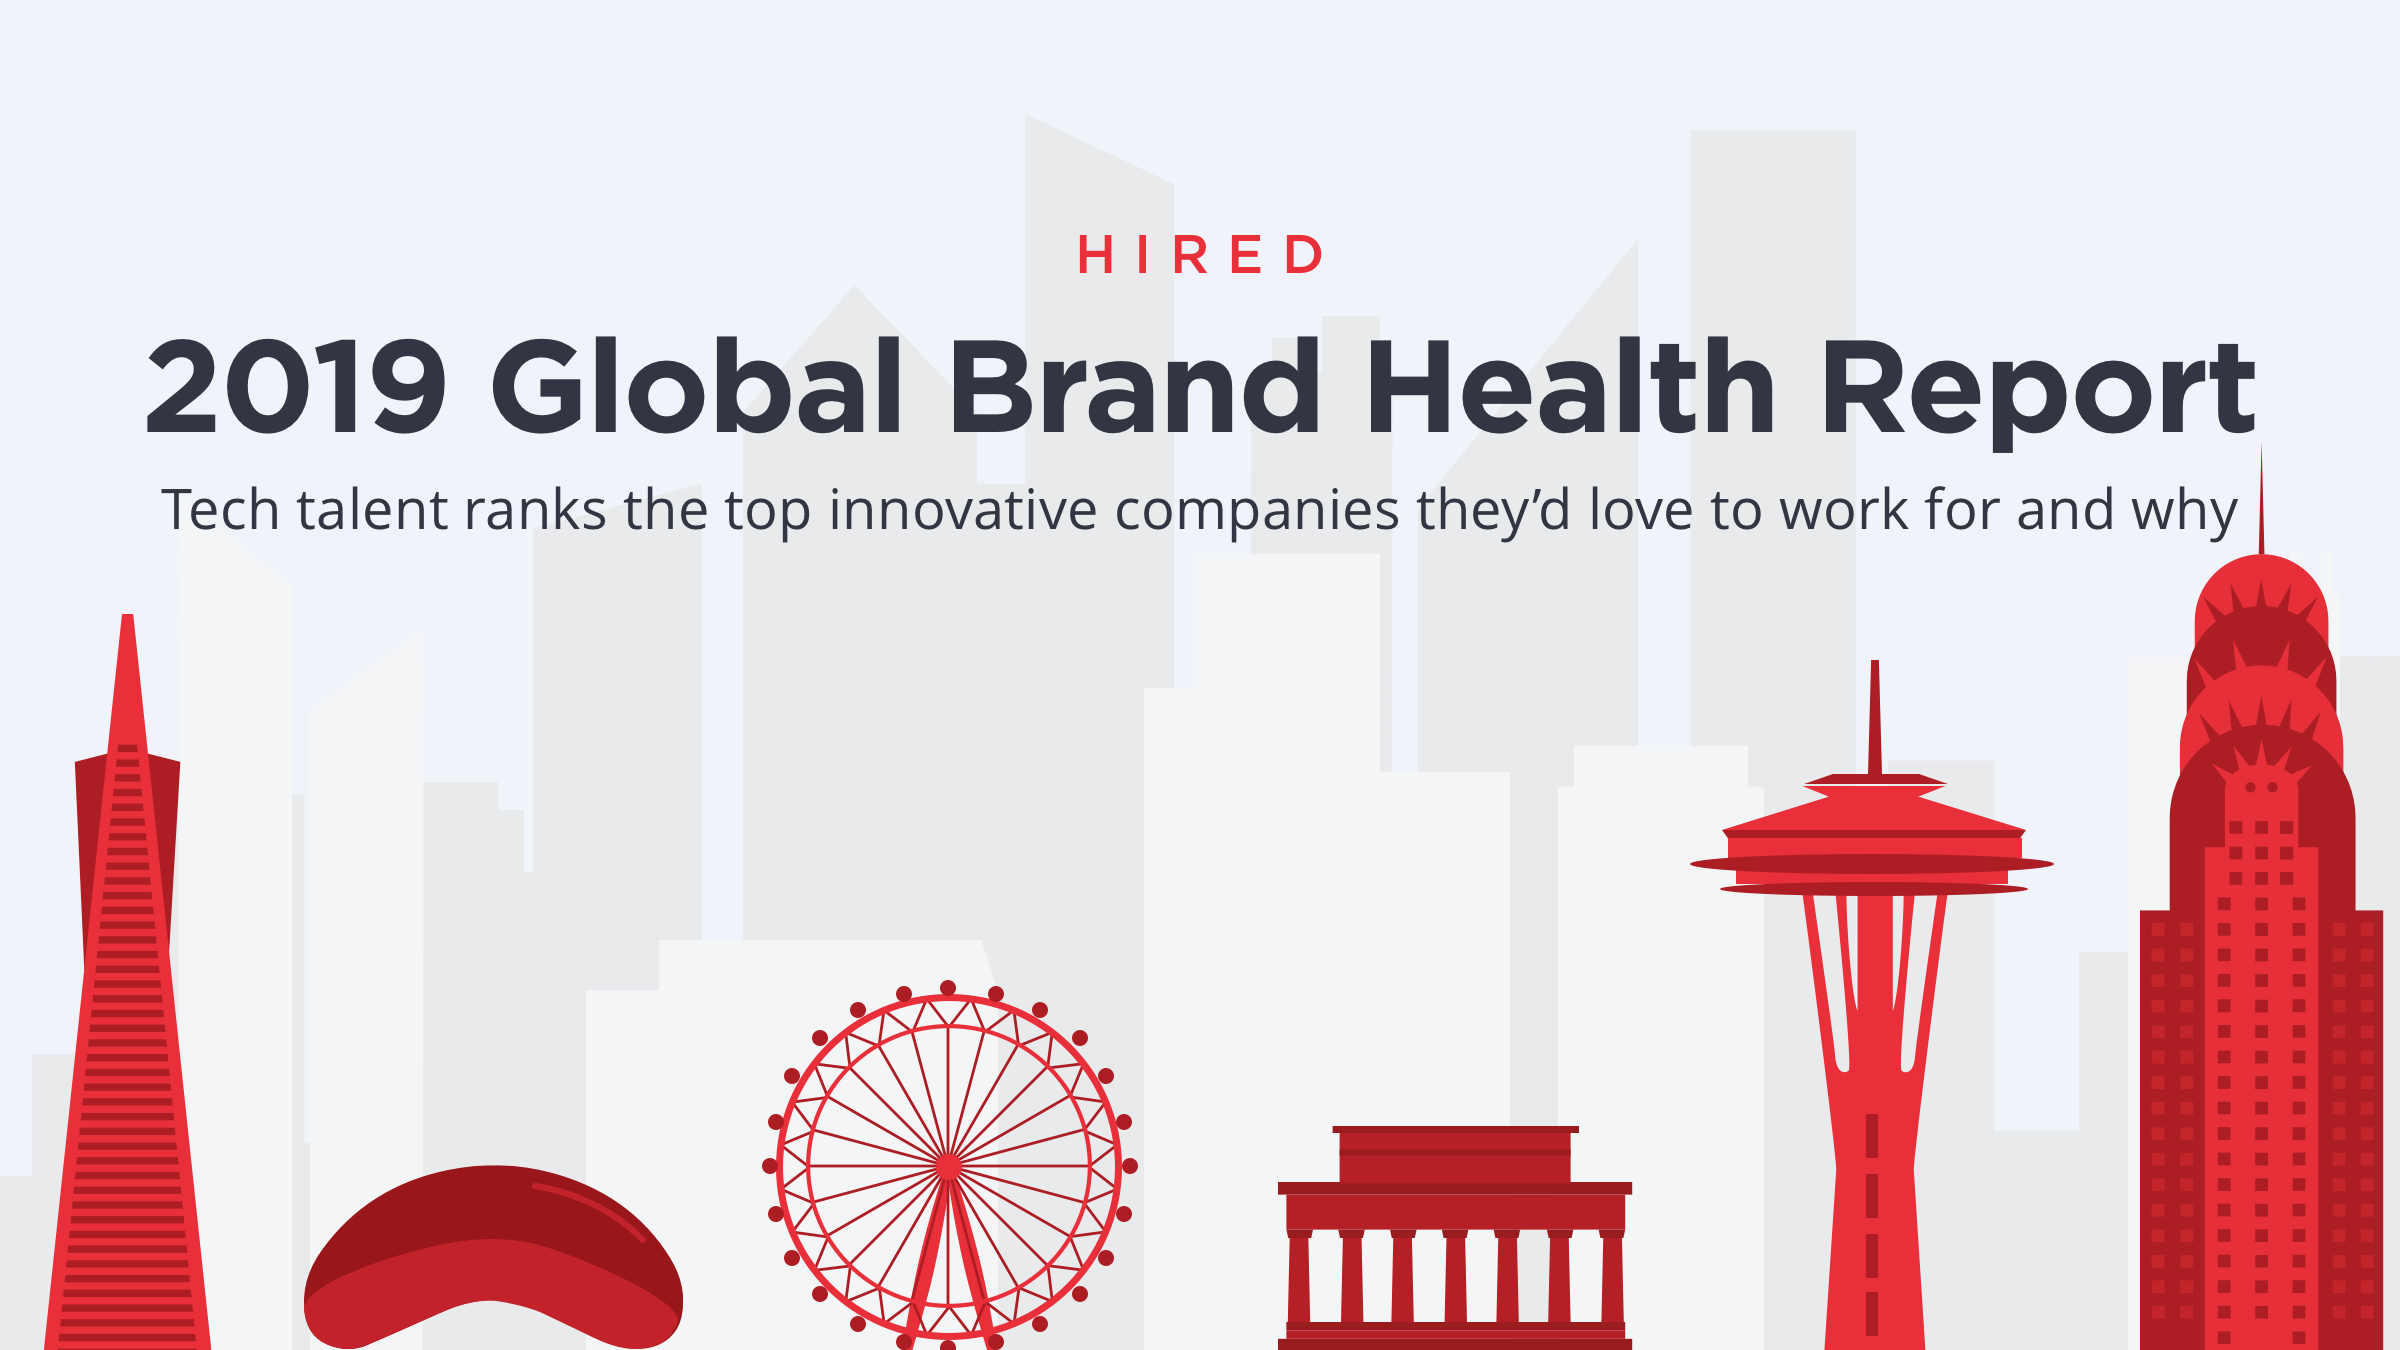 hireds-2019-global-brand-health-report-where-tech-talent-want-to-work-and-why